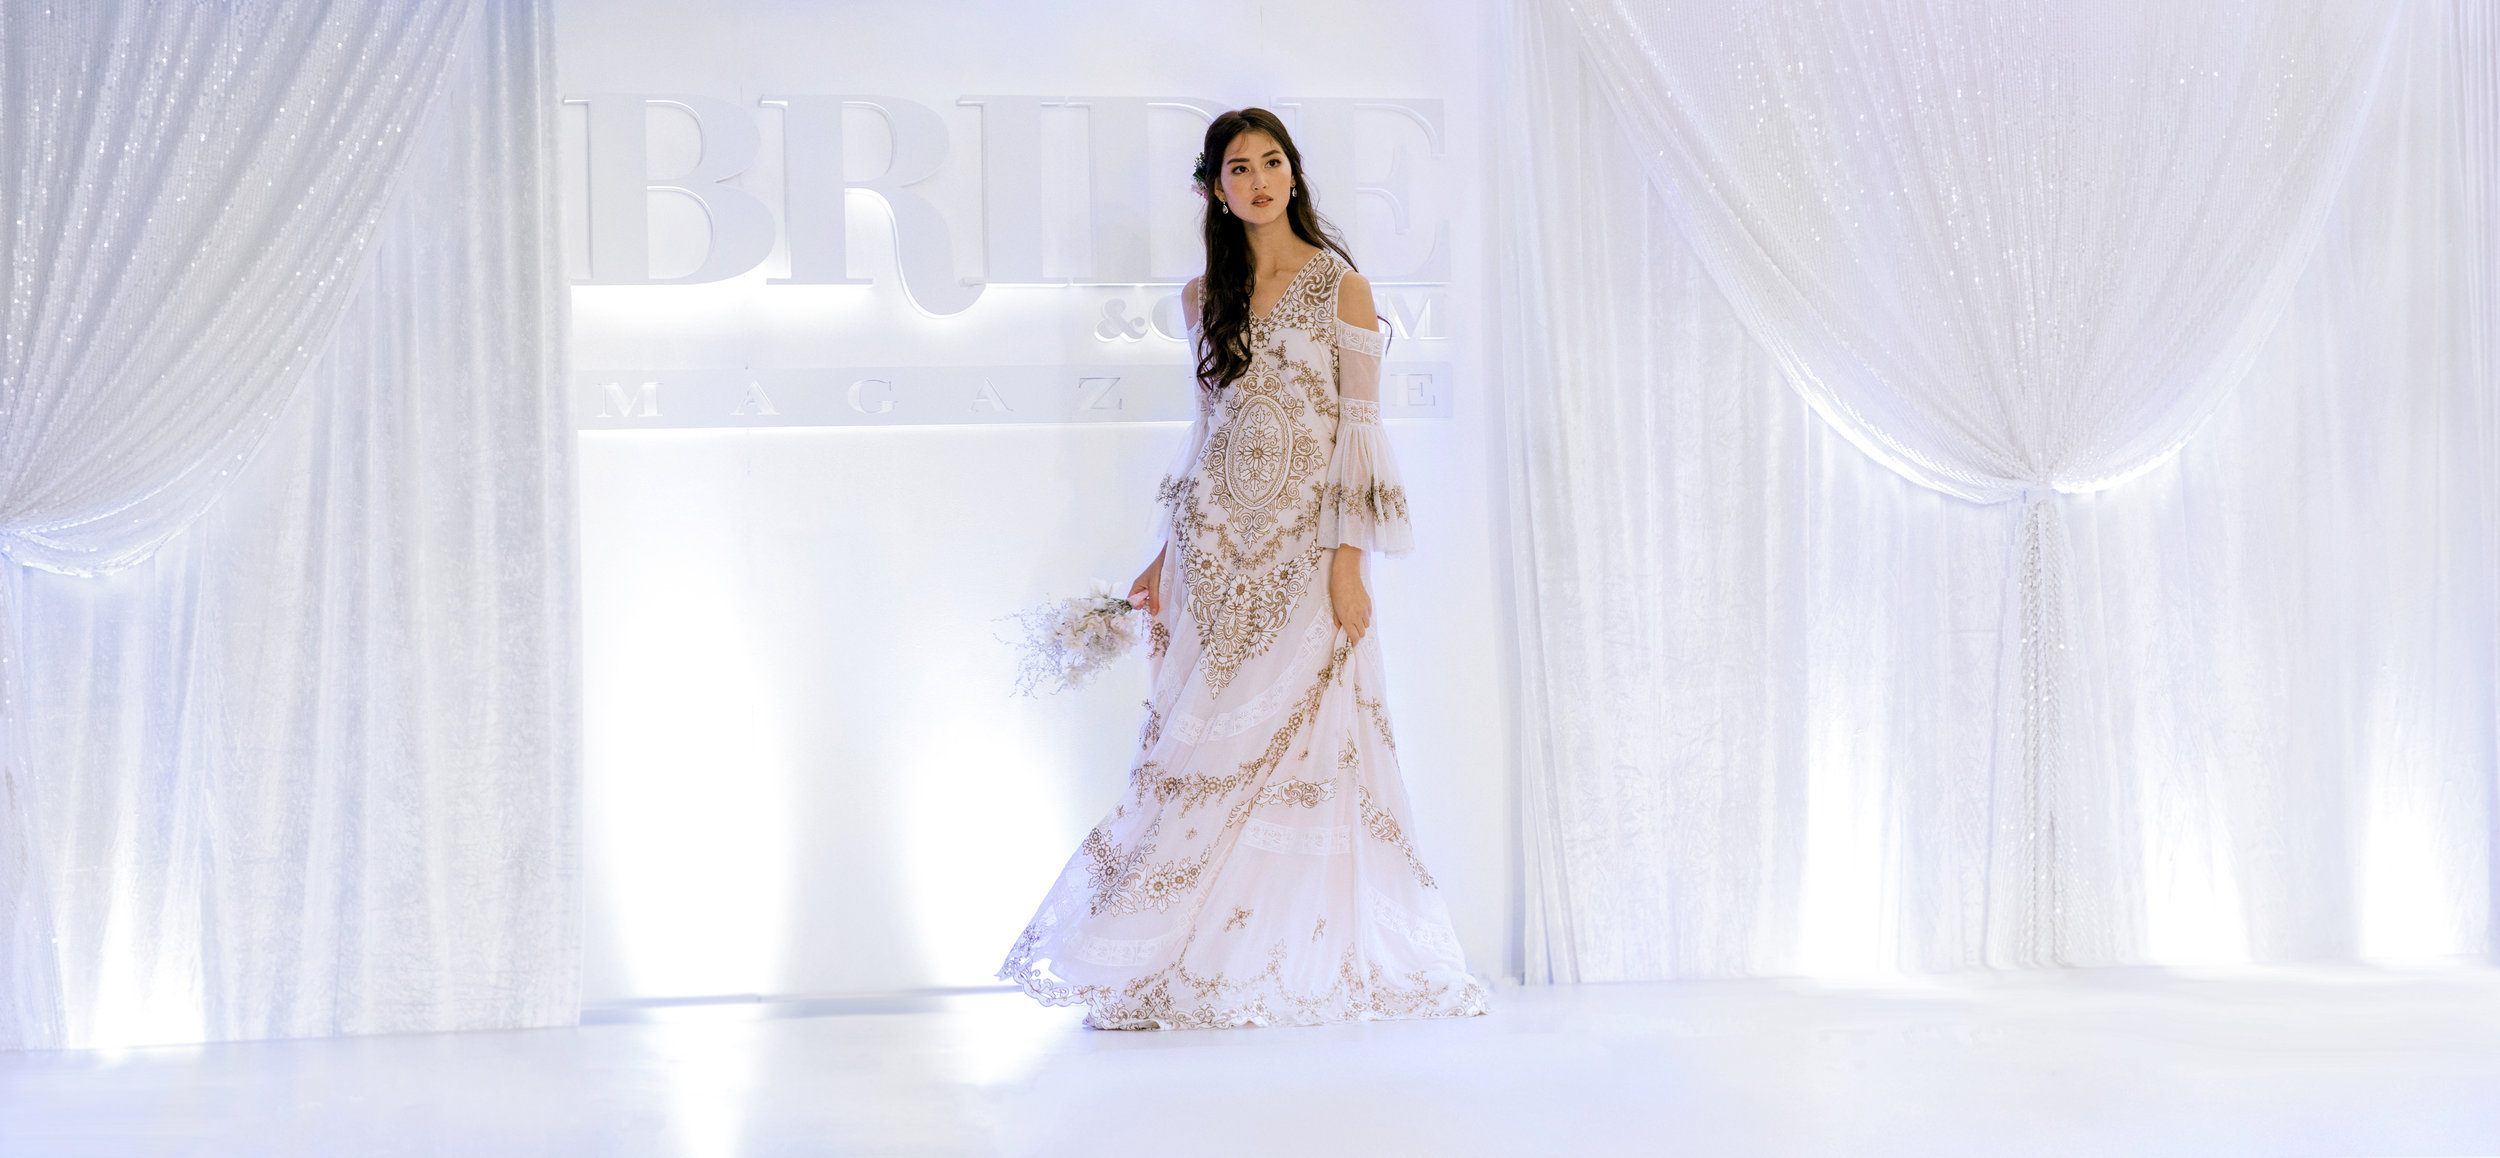 Corina Snow - The Bridal House     at the     Bride & Groom magazine Fashion Show     at the     Bride & Groom Wedding Show     2019